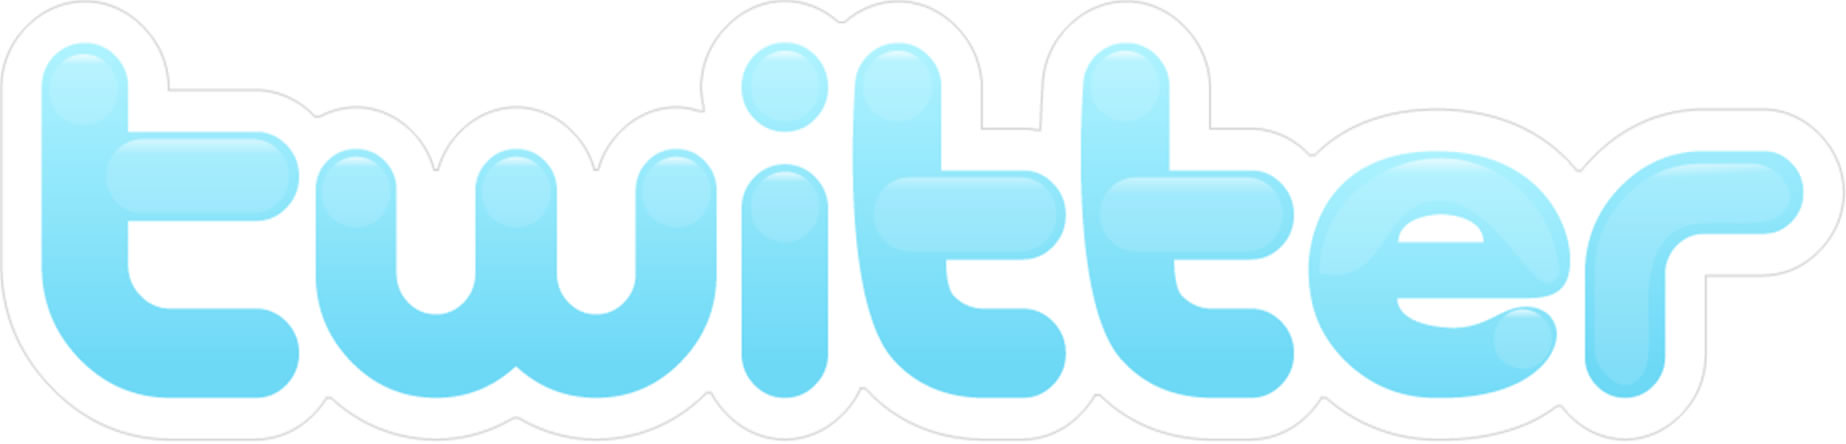 Descargar Twitter 3.1.0.20 para BlackBerry